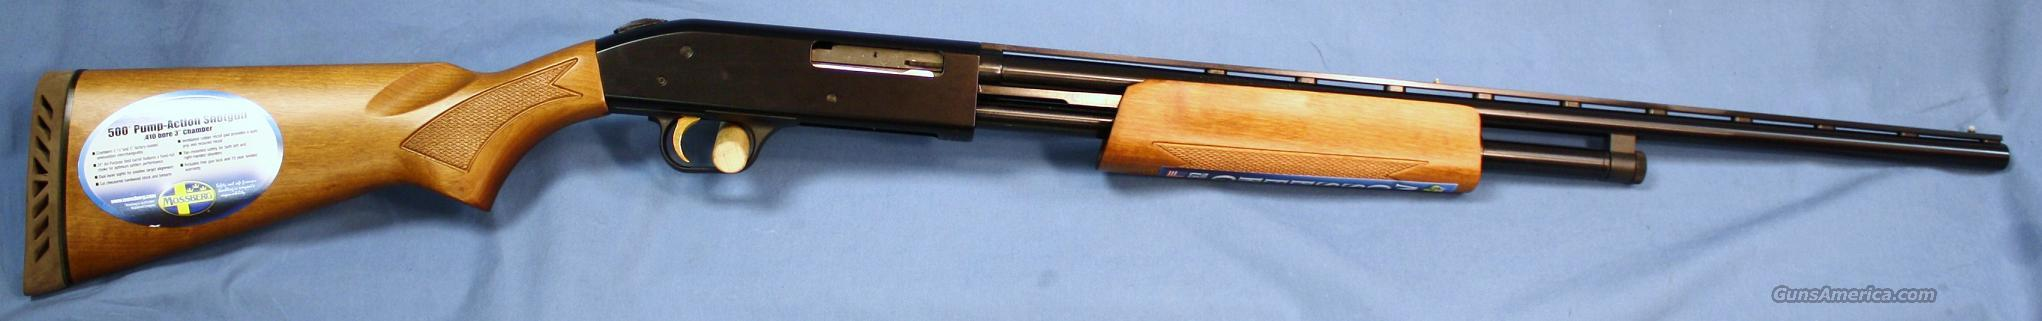 Mossberg 500 Crown Grade Pump Shotgun .410 Gauge  Guns > Shotguns > Mossberg Shotguns > Pump > Sporting